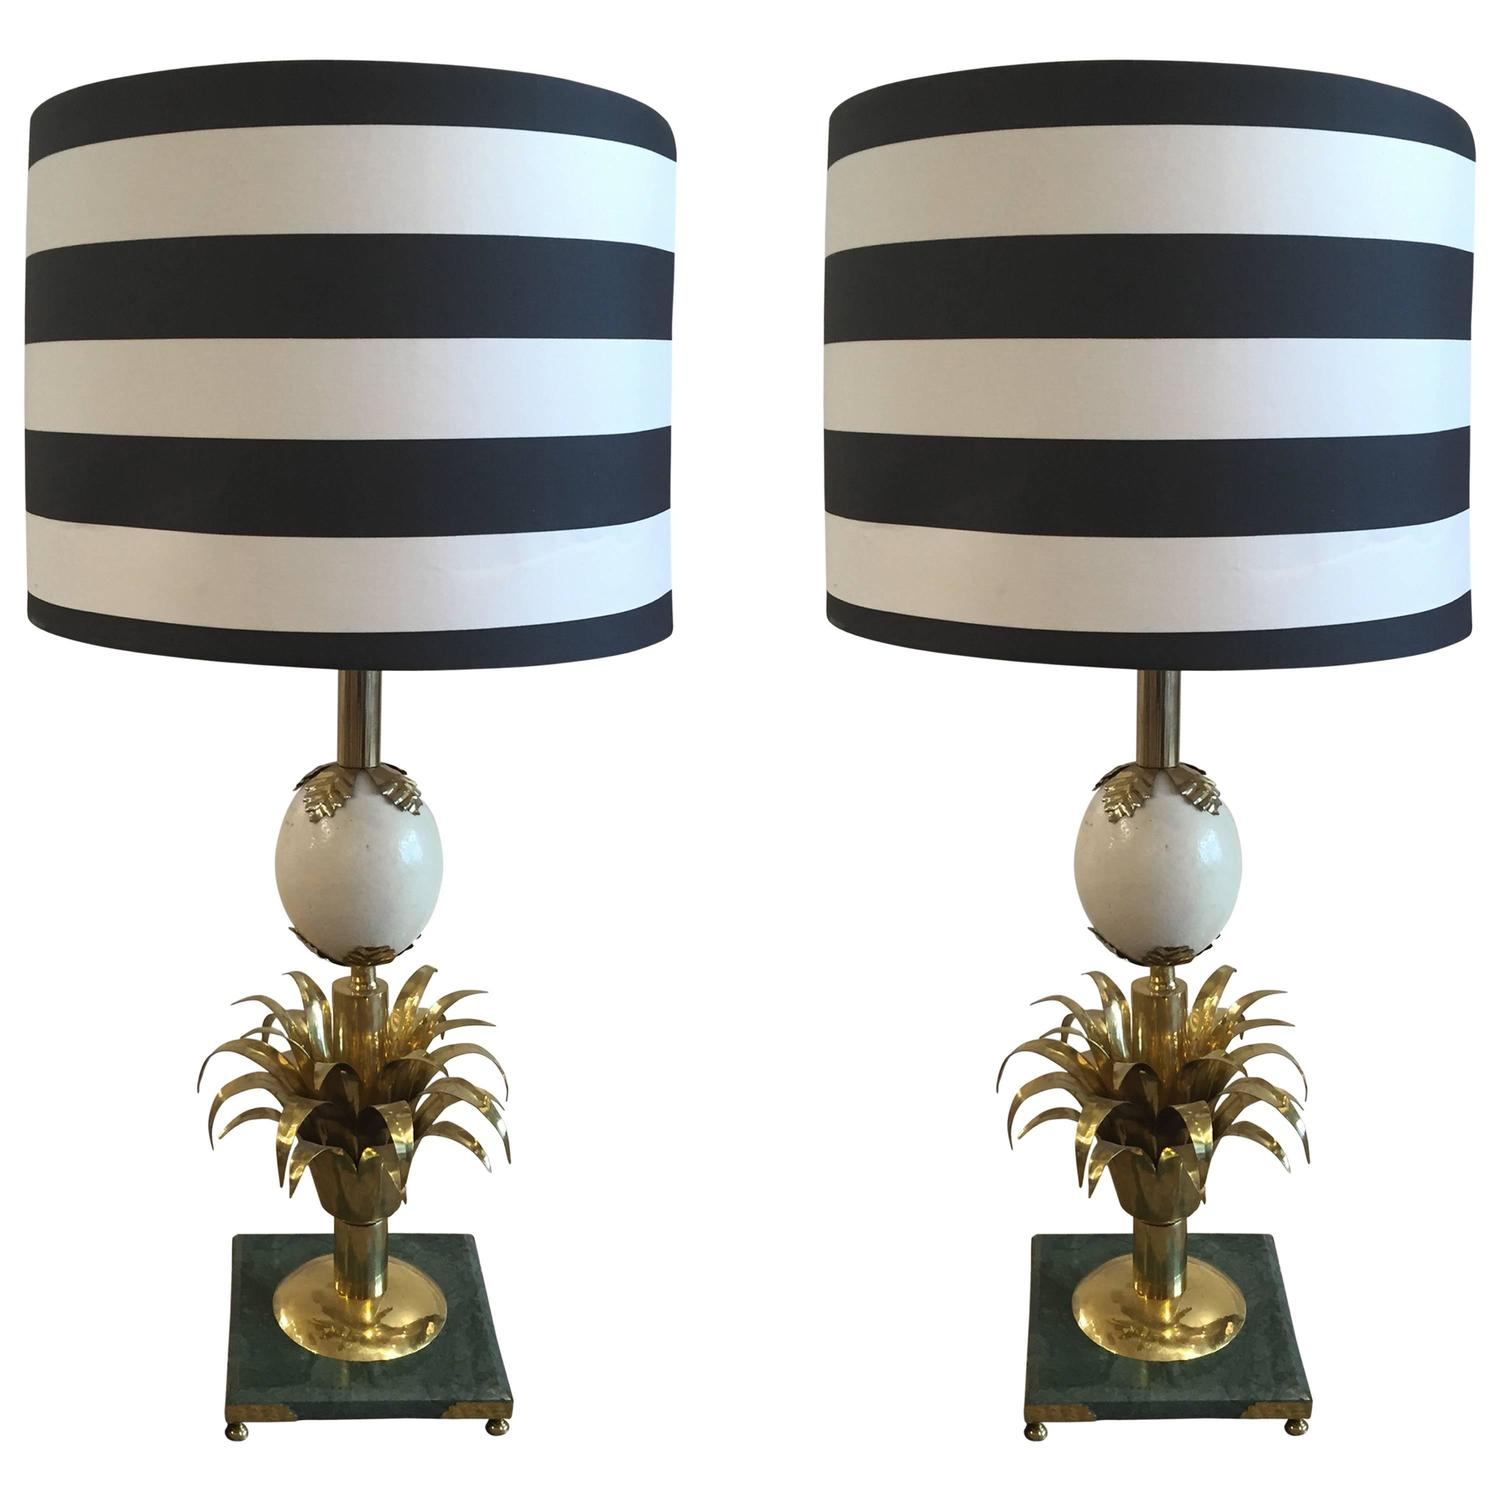 Brass And Ostrich Egg Lamps With Porta Romana Striped